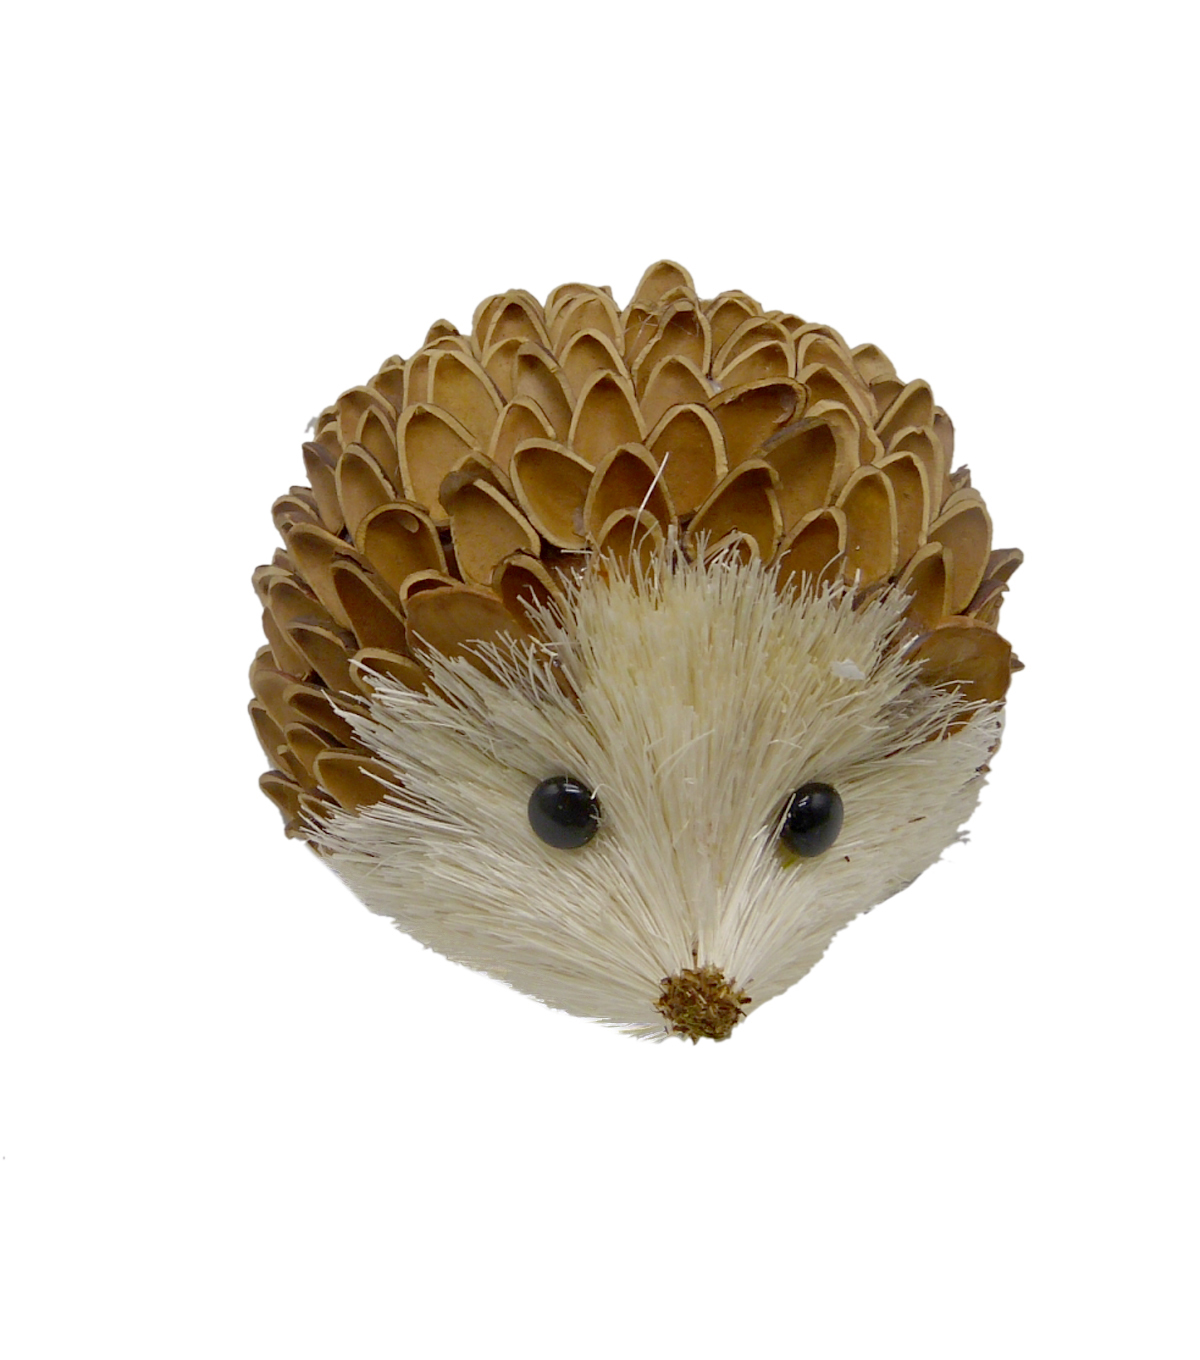 Blooming Autumn Large Hedgehog